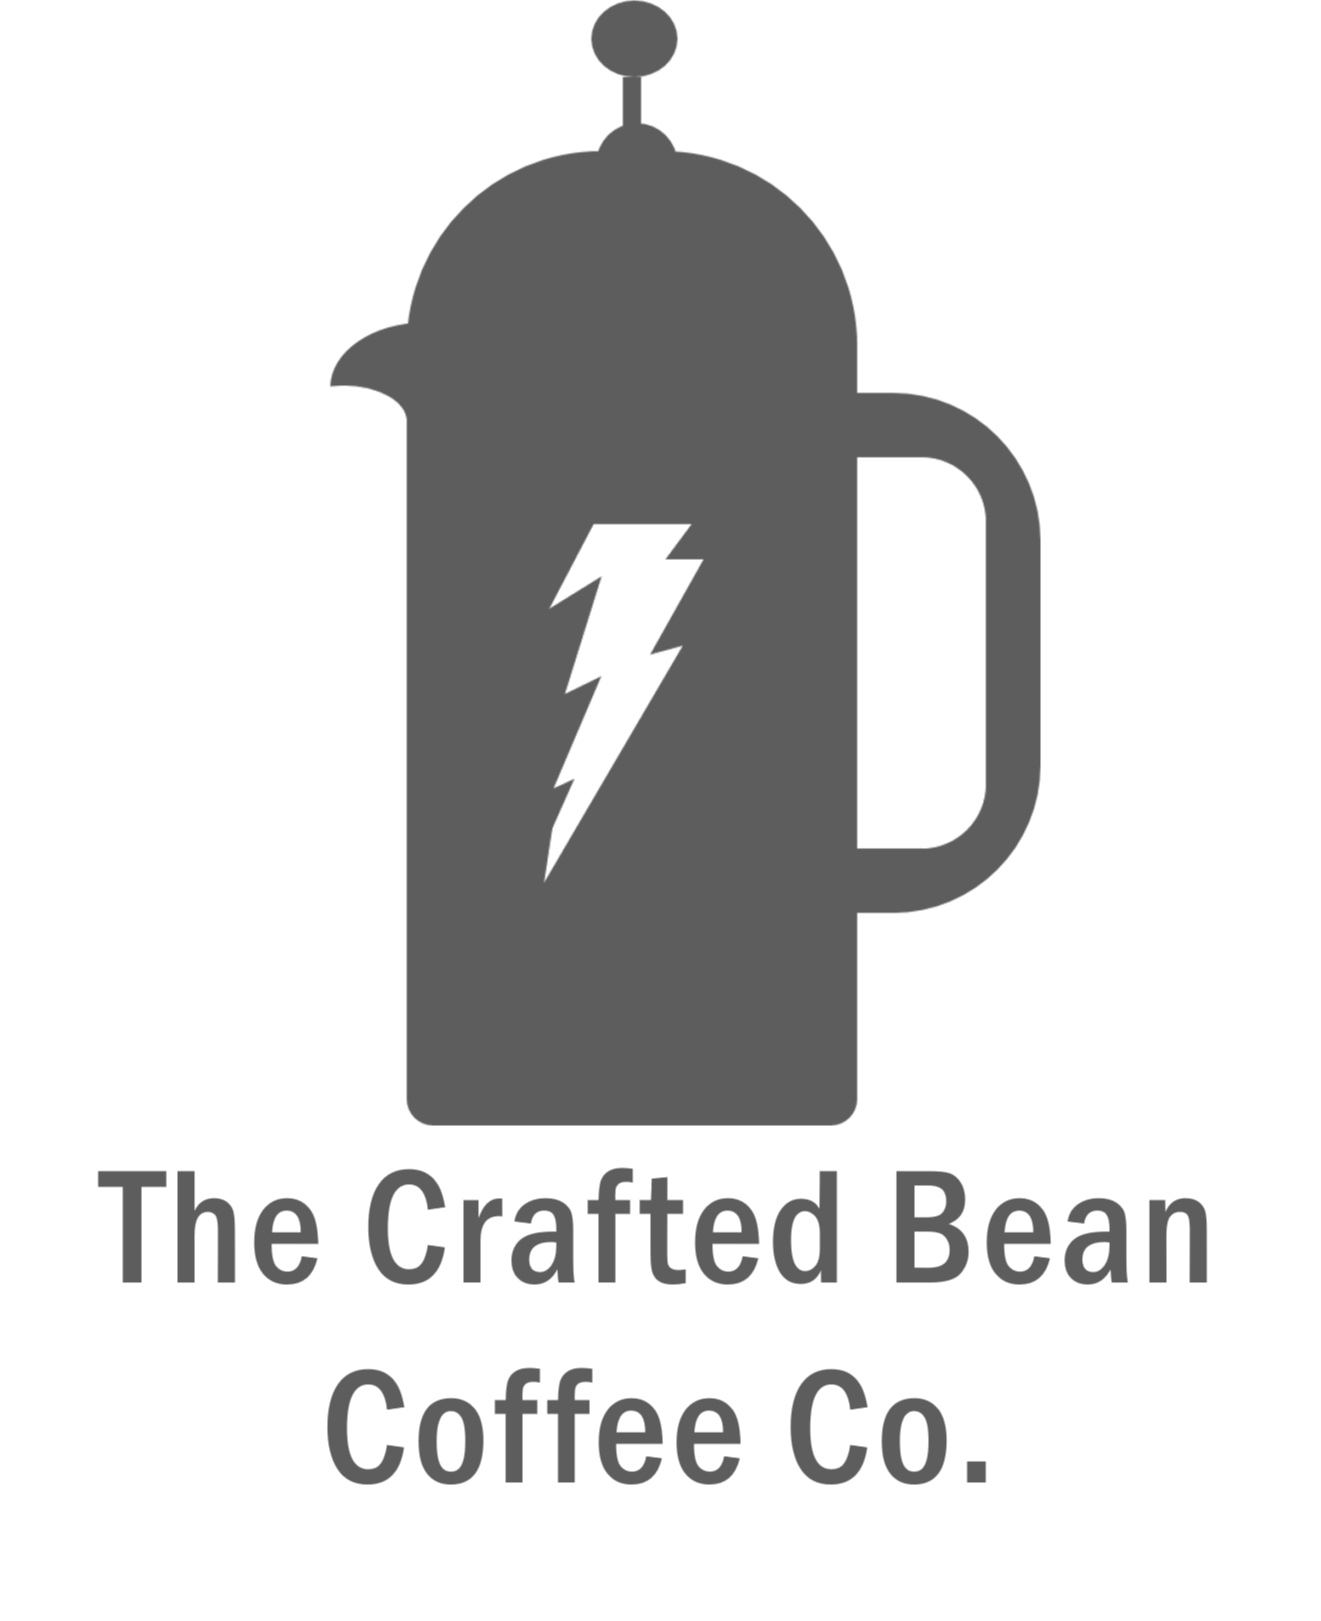 The Crafted Bean